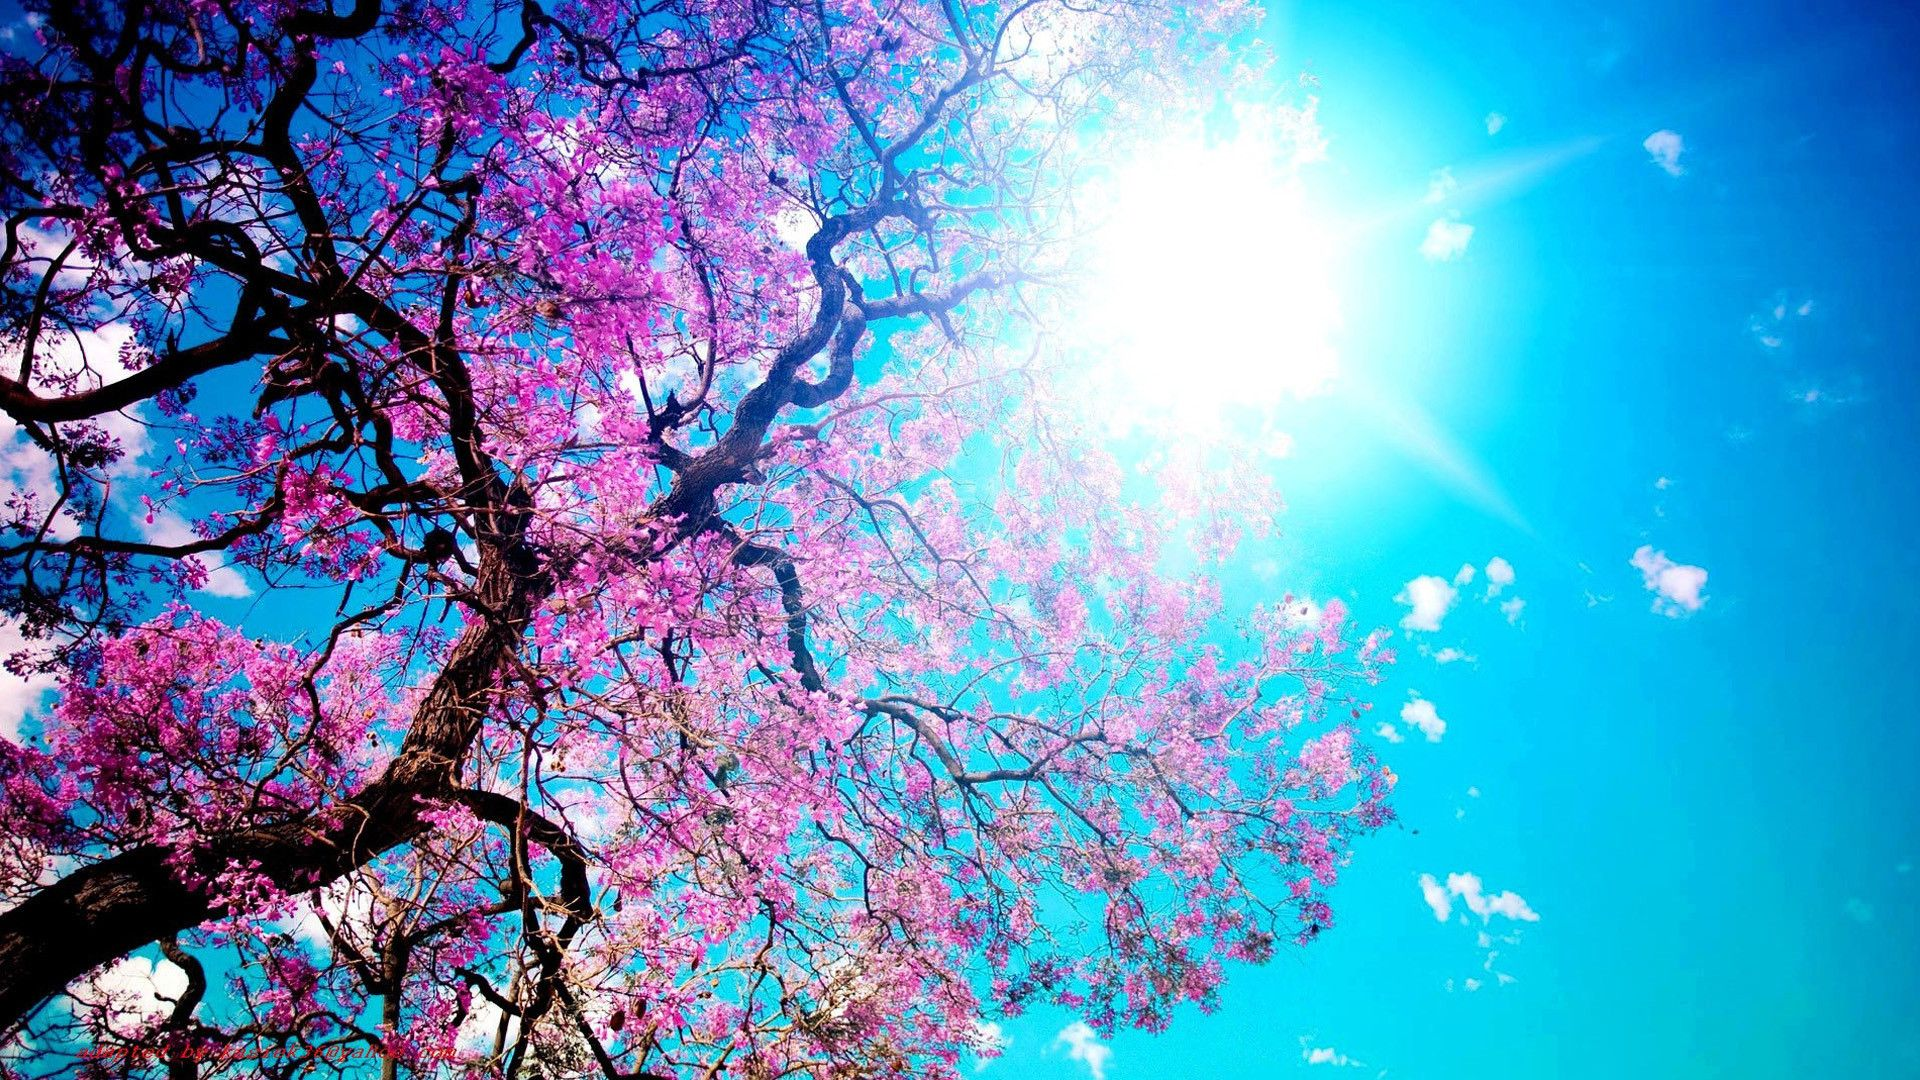 Wallpapers For Computer Spring Wallpaper Beautiful Nature Spring Spring Pictures